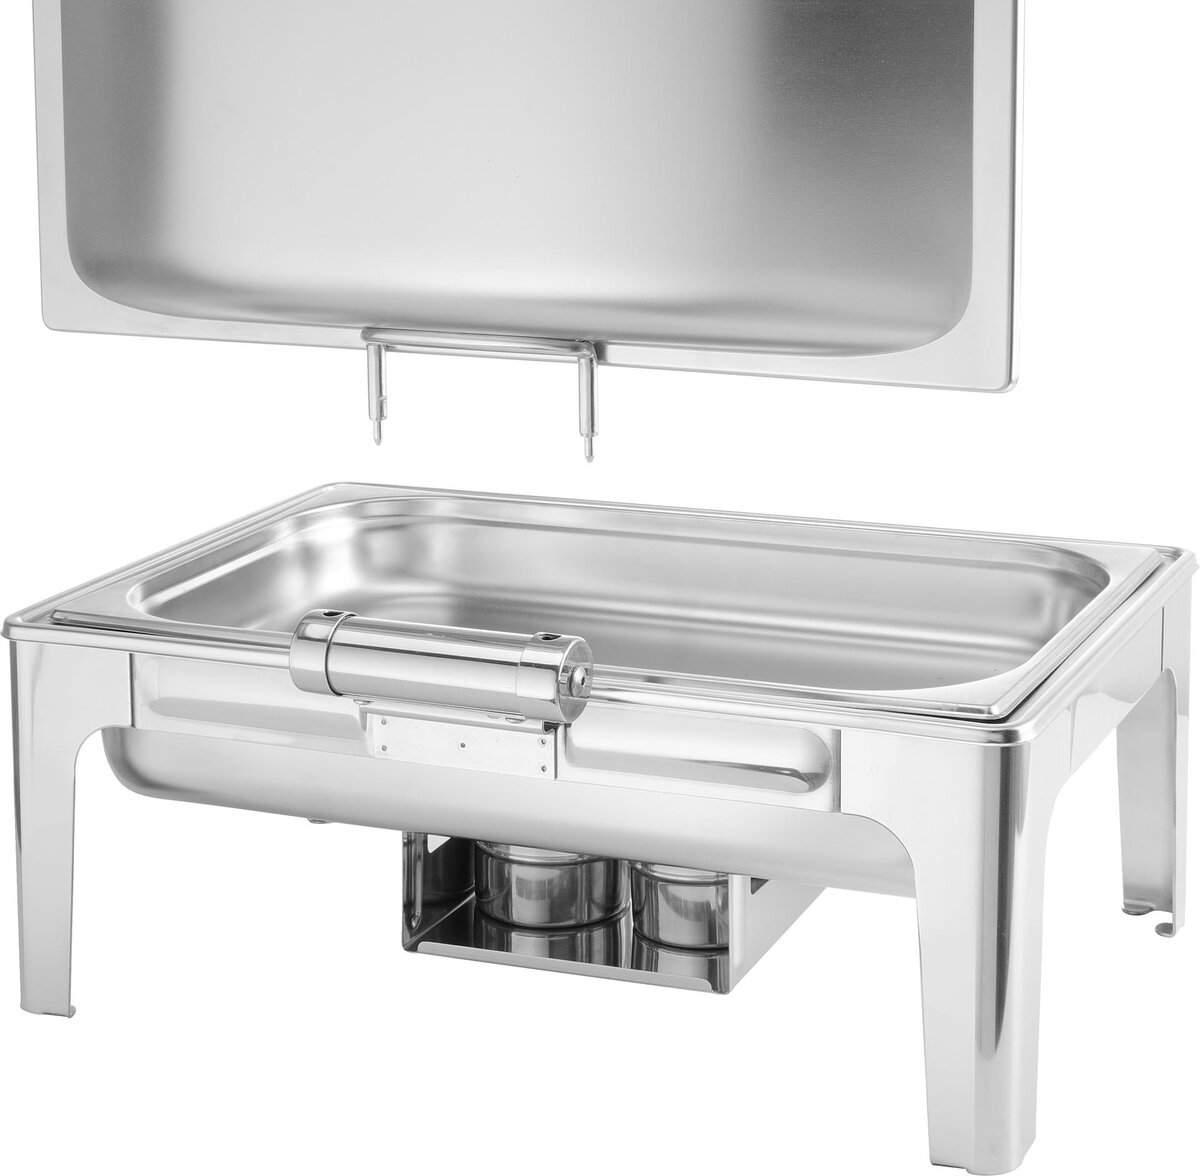 Chafing Dish 1/1 GN, Satiniert (1)